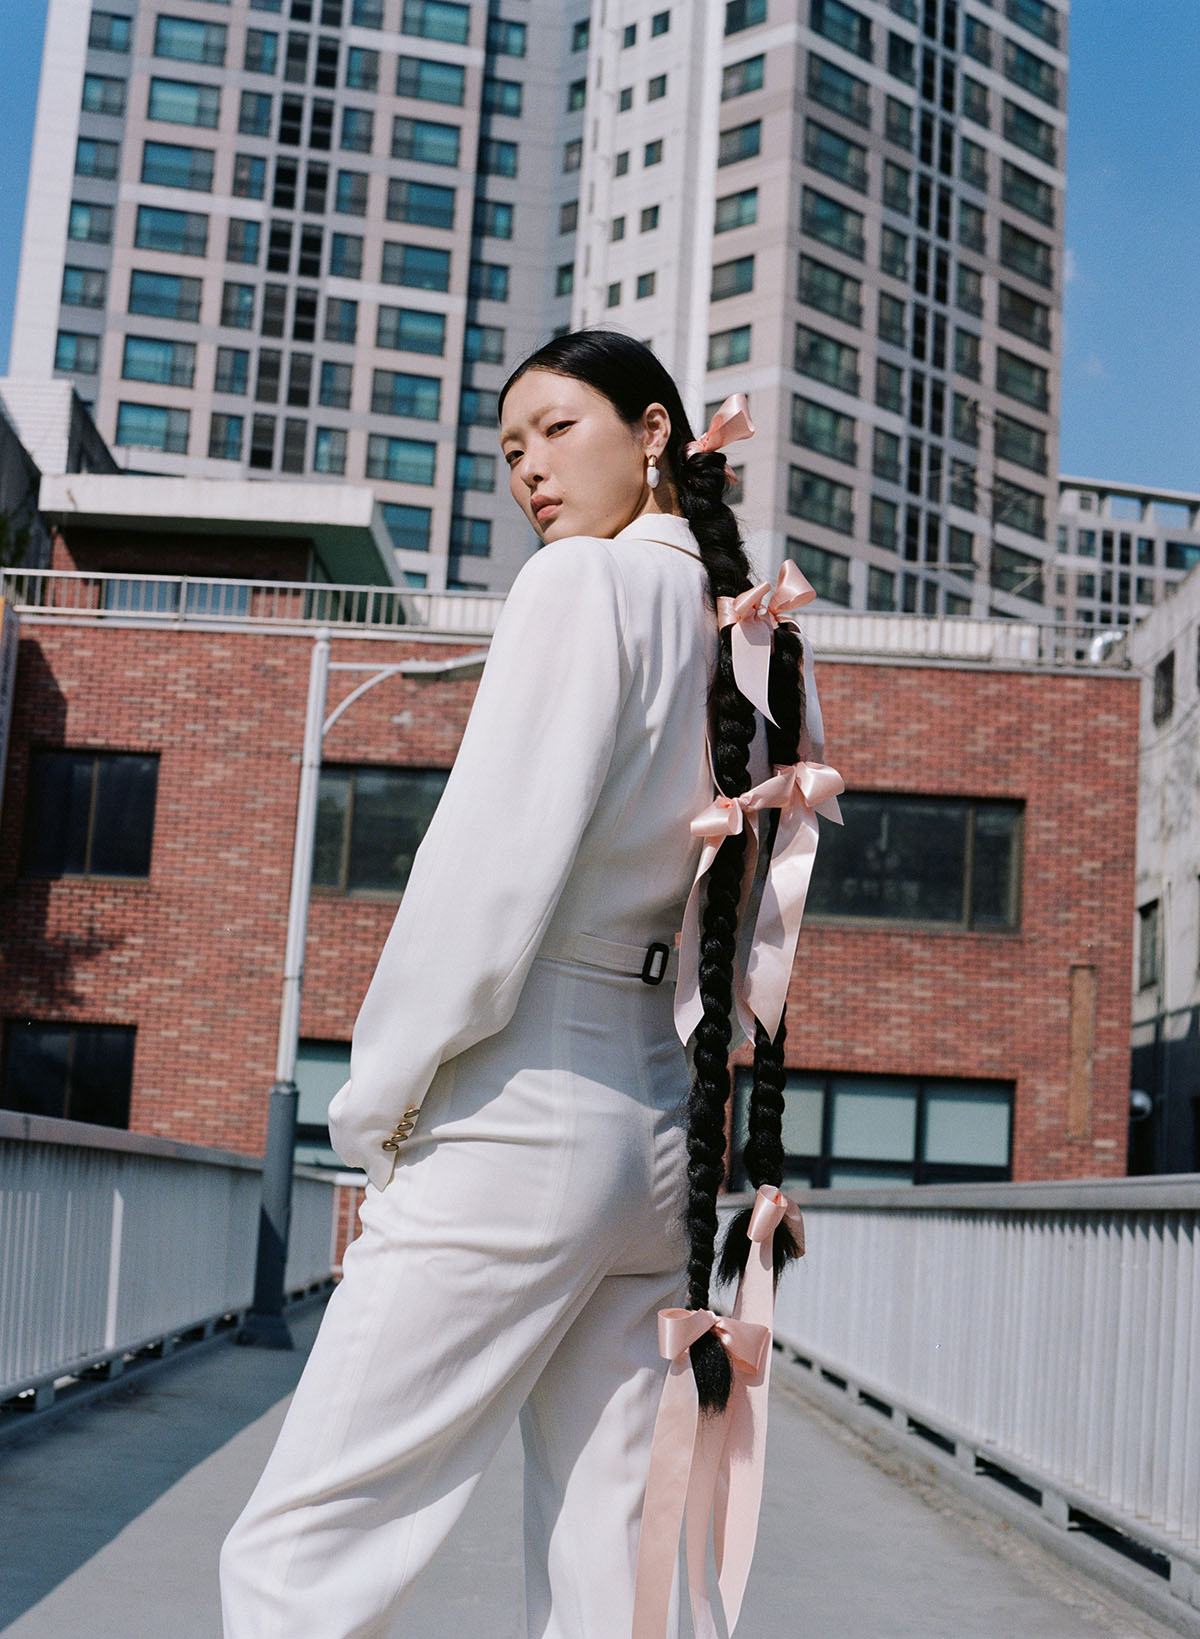 Sung Hee Kim by Cecy Young for Elle Mexico September 2021